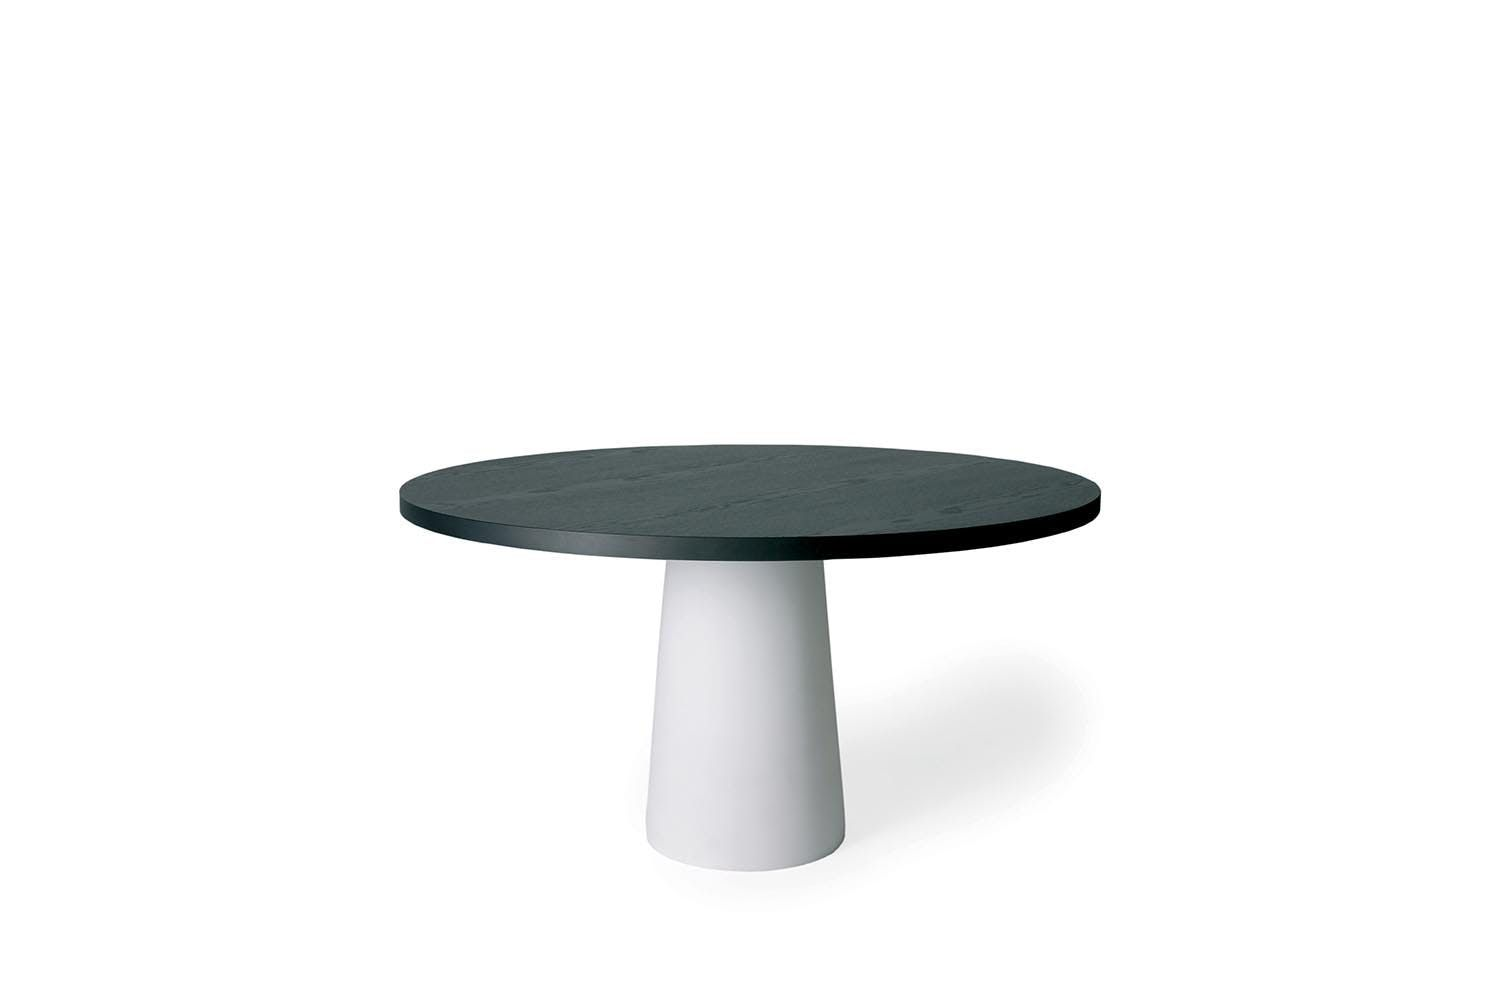 Container Tafel Moooi : Container table 7143 moooi pinterest wooden tops table and